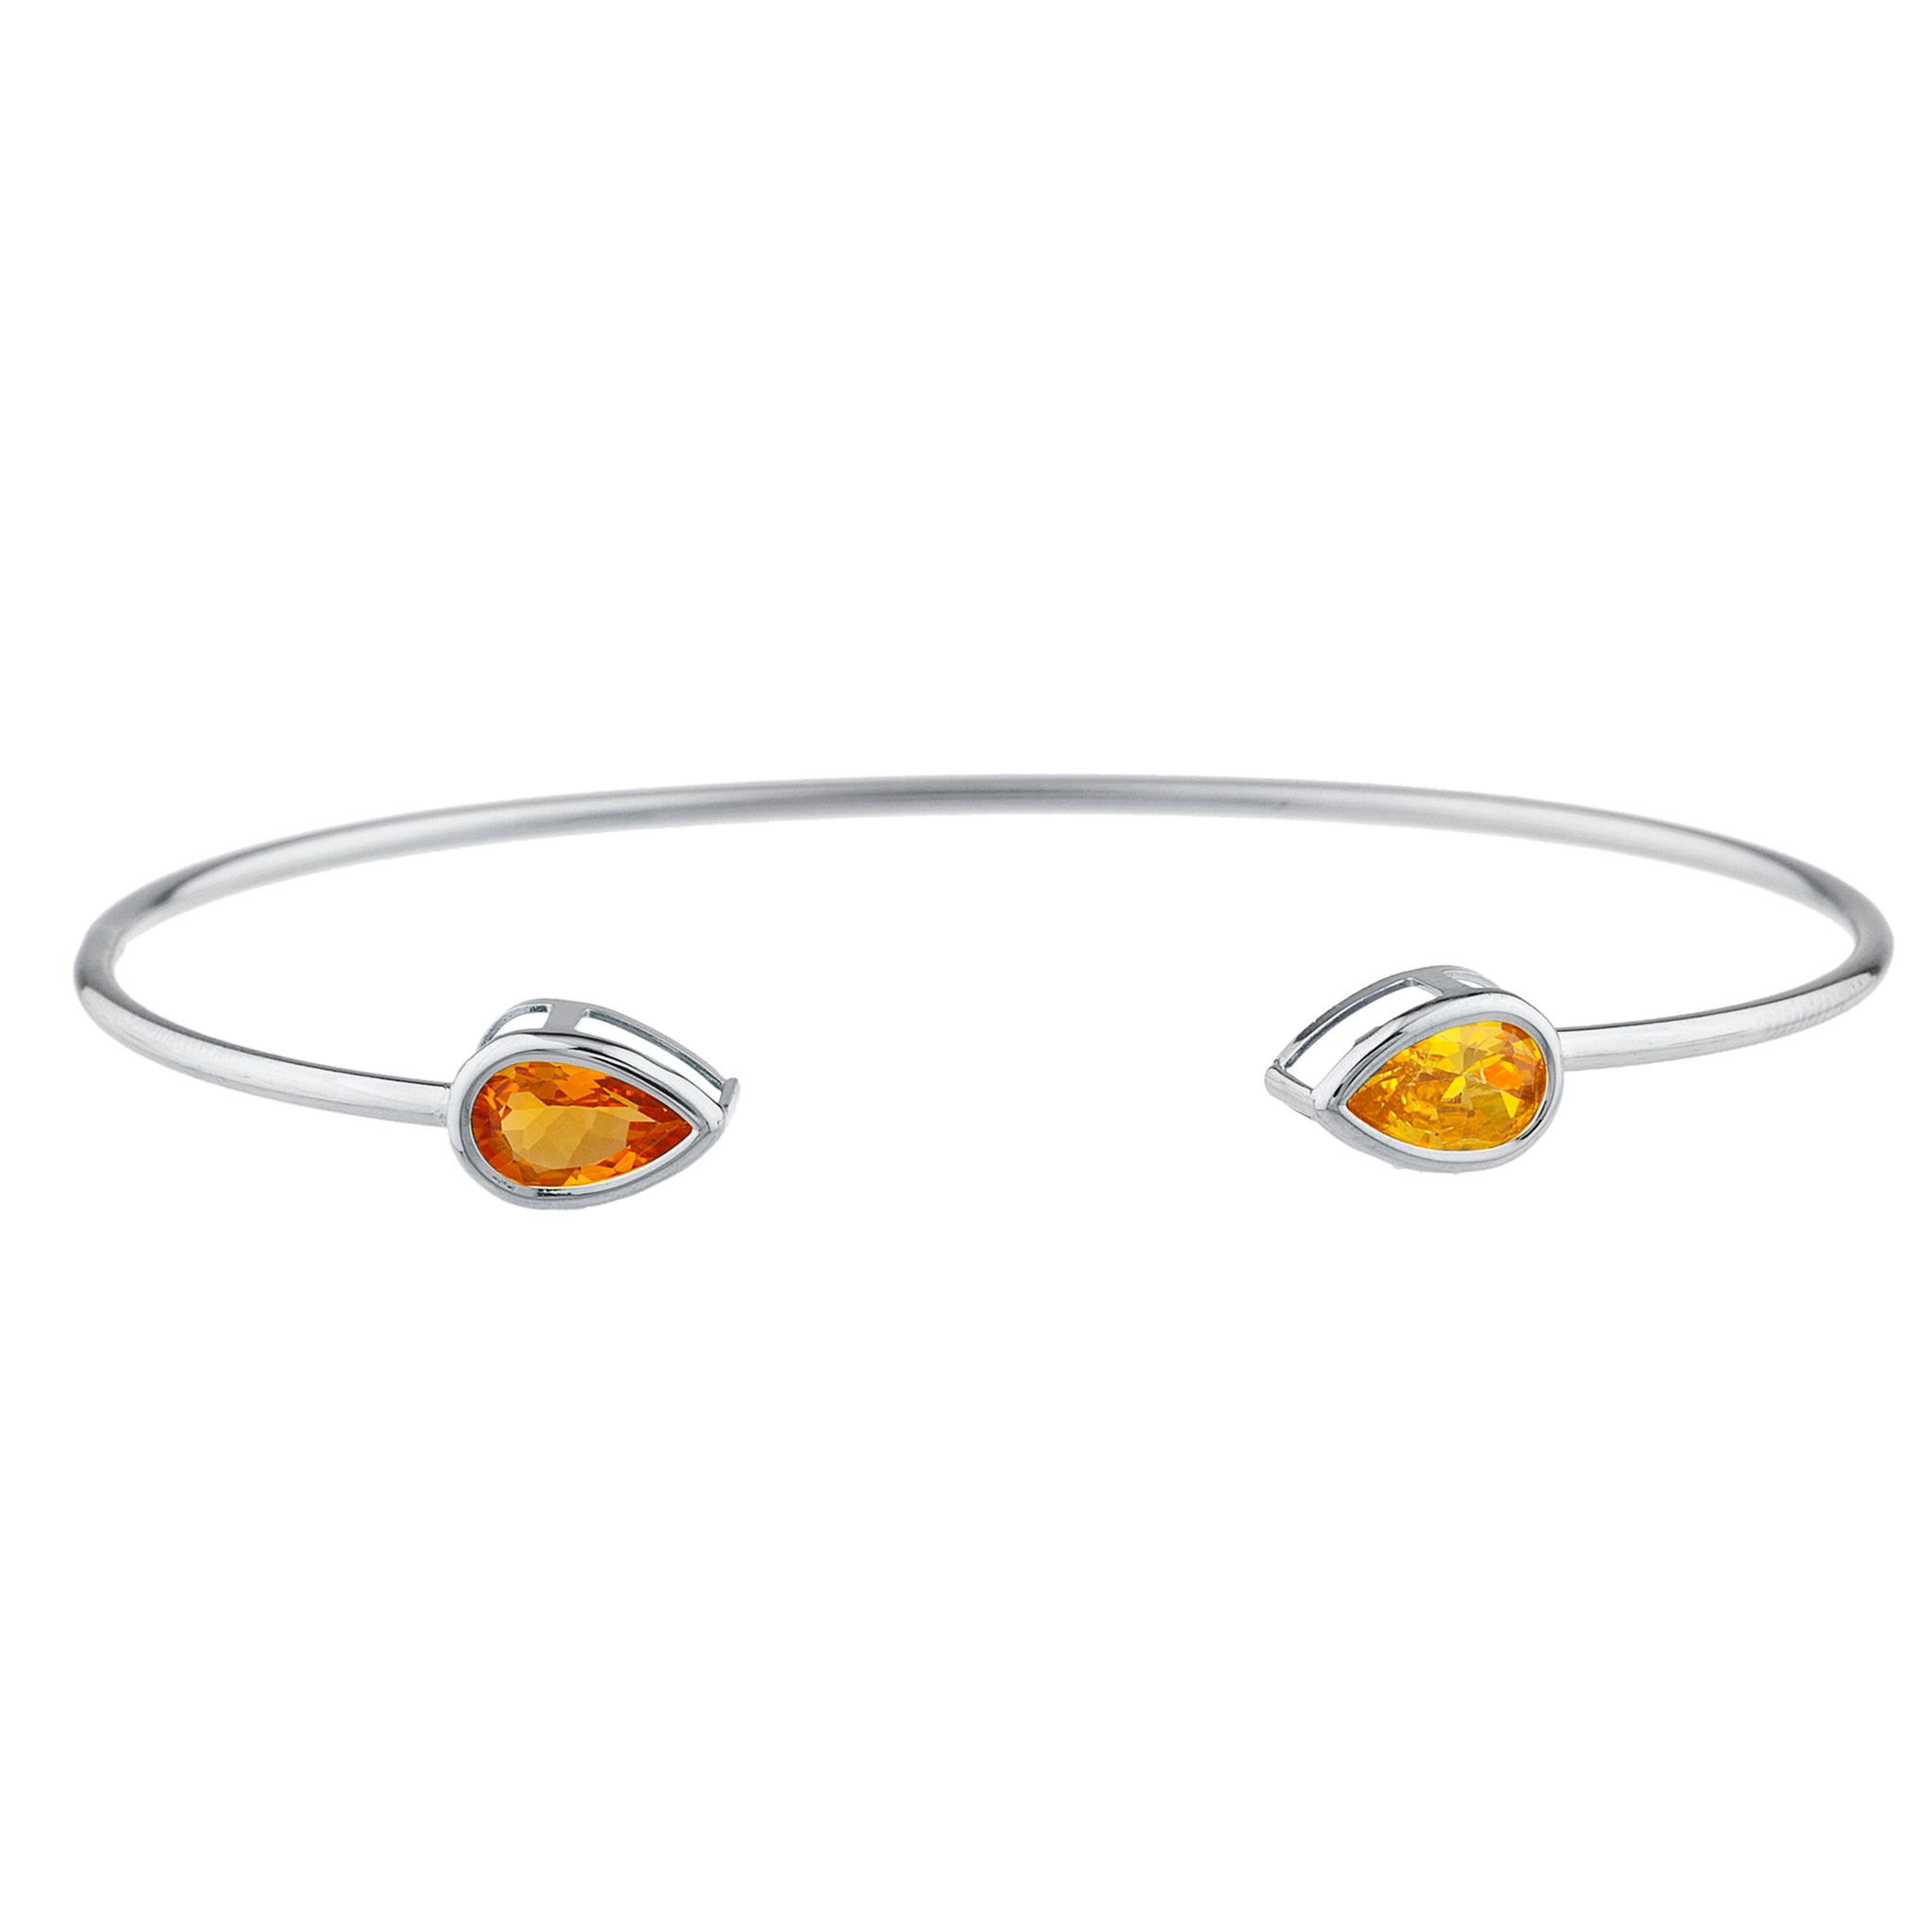 Orange & Yellow Citrine Pear Bezel Bangle Bracelet .925 Sterling Silver